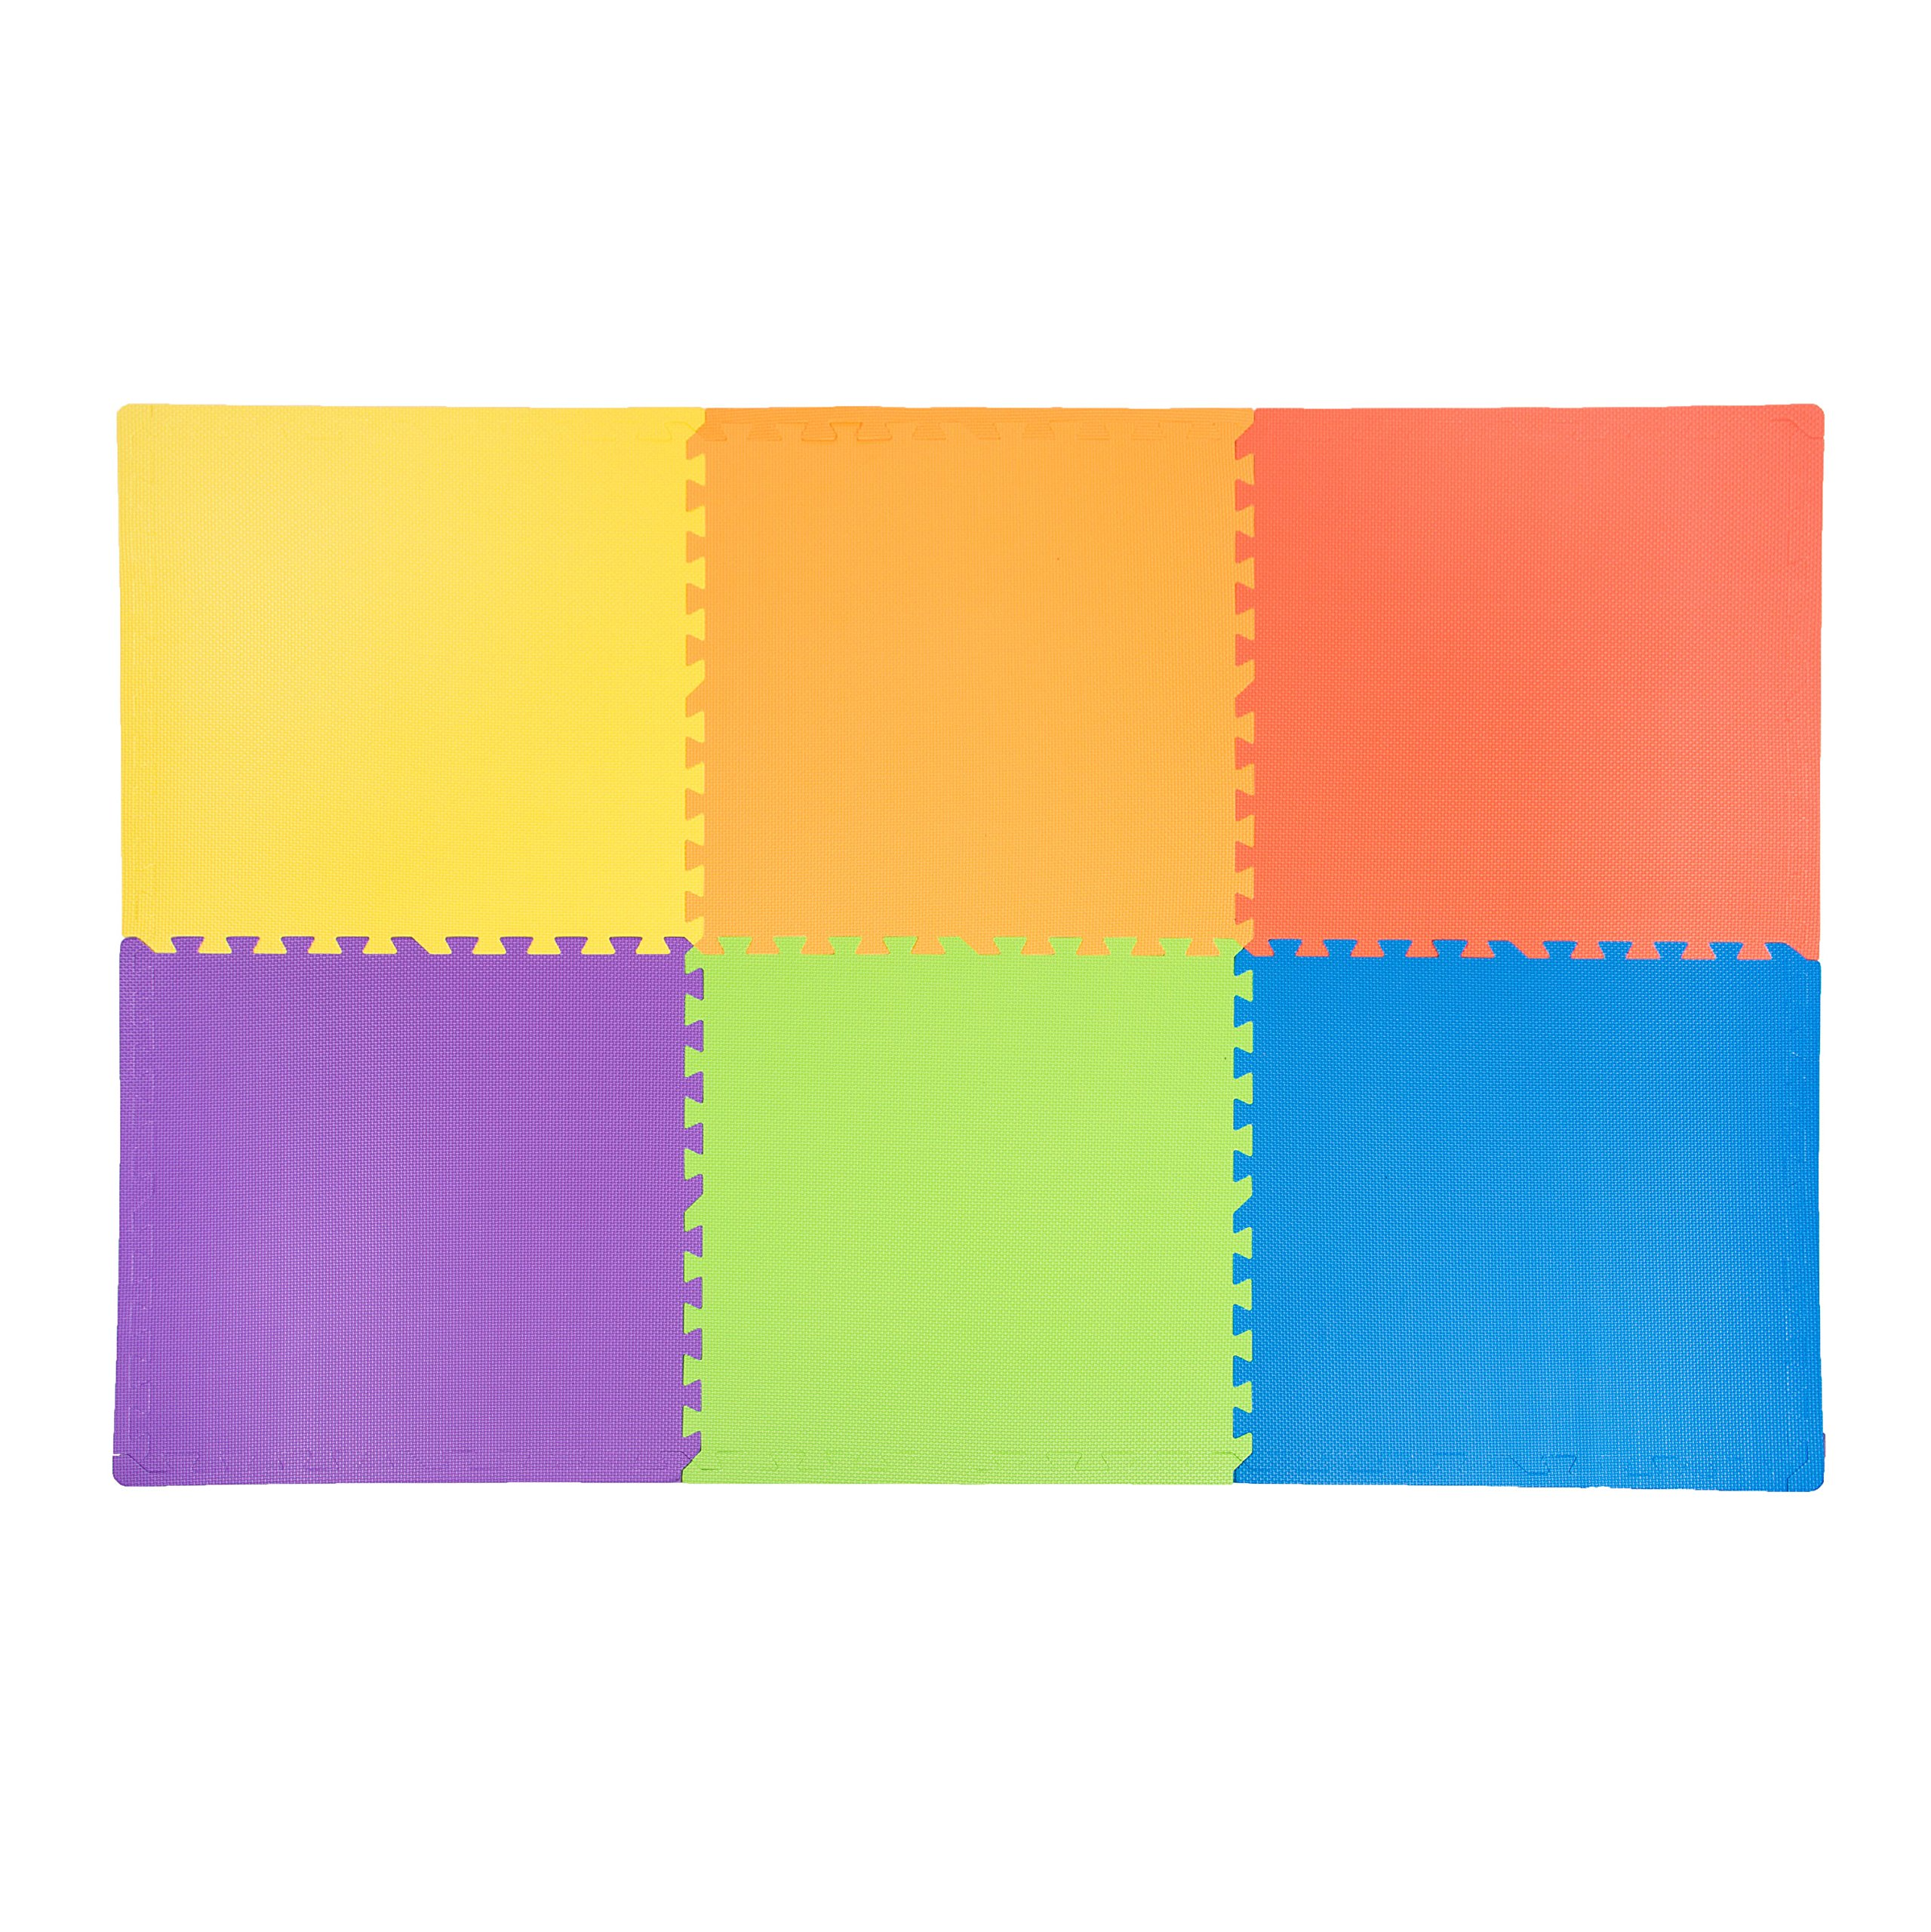 IncStores - Rainbow Foam Tiles (12 Pack) - 2ft x 2ft Interlocking Foam Children's Portable Playmats by IncStores (Image #5)